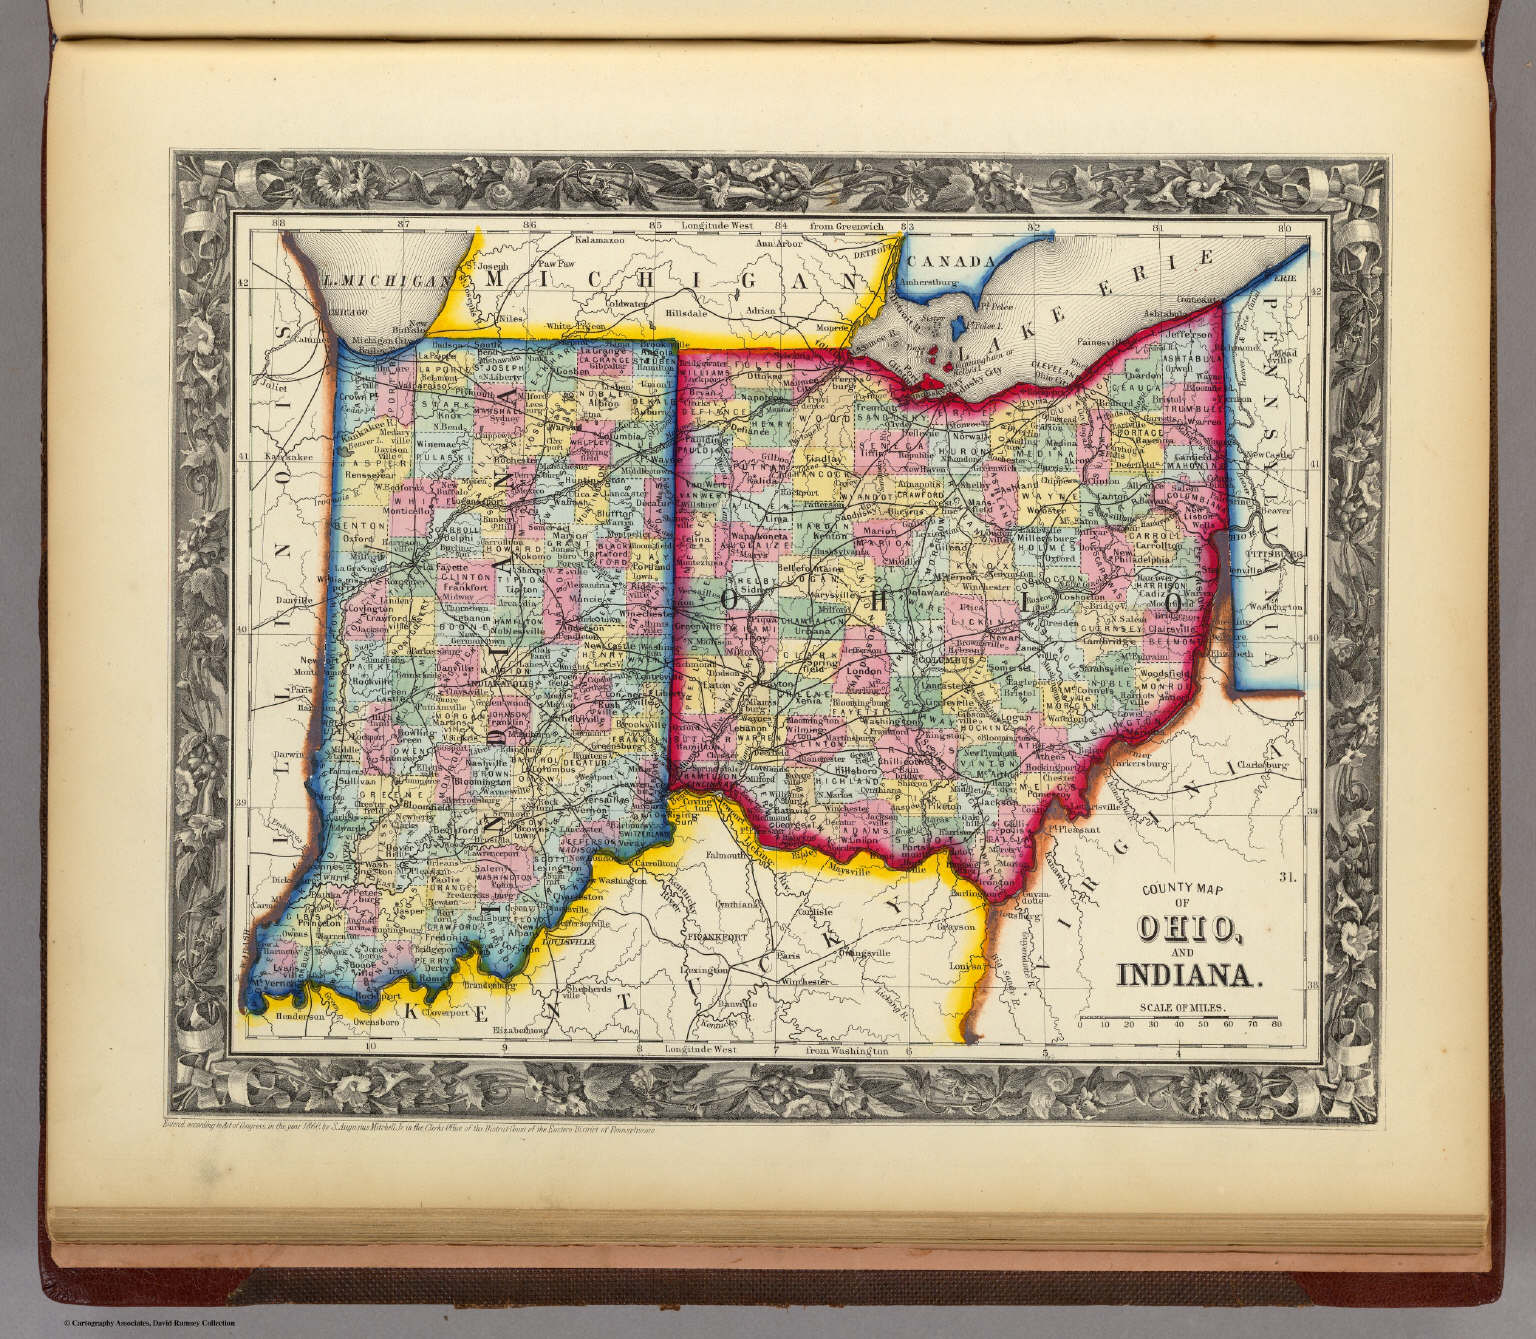 County Map Of Ohio And Indiana  David Rumsey Historical Map